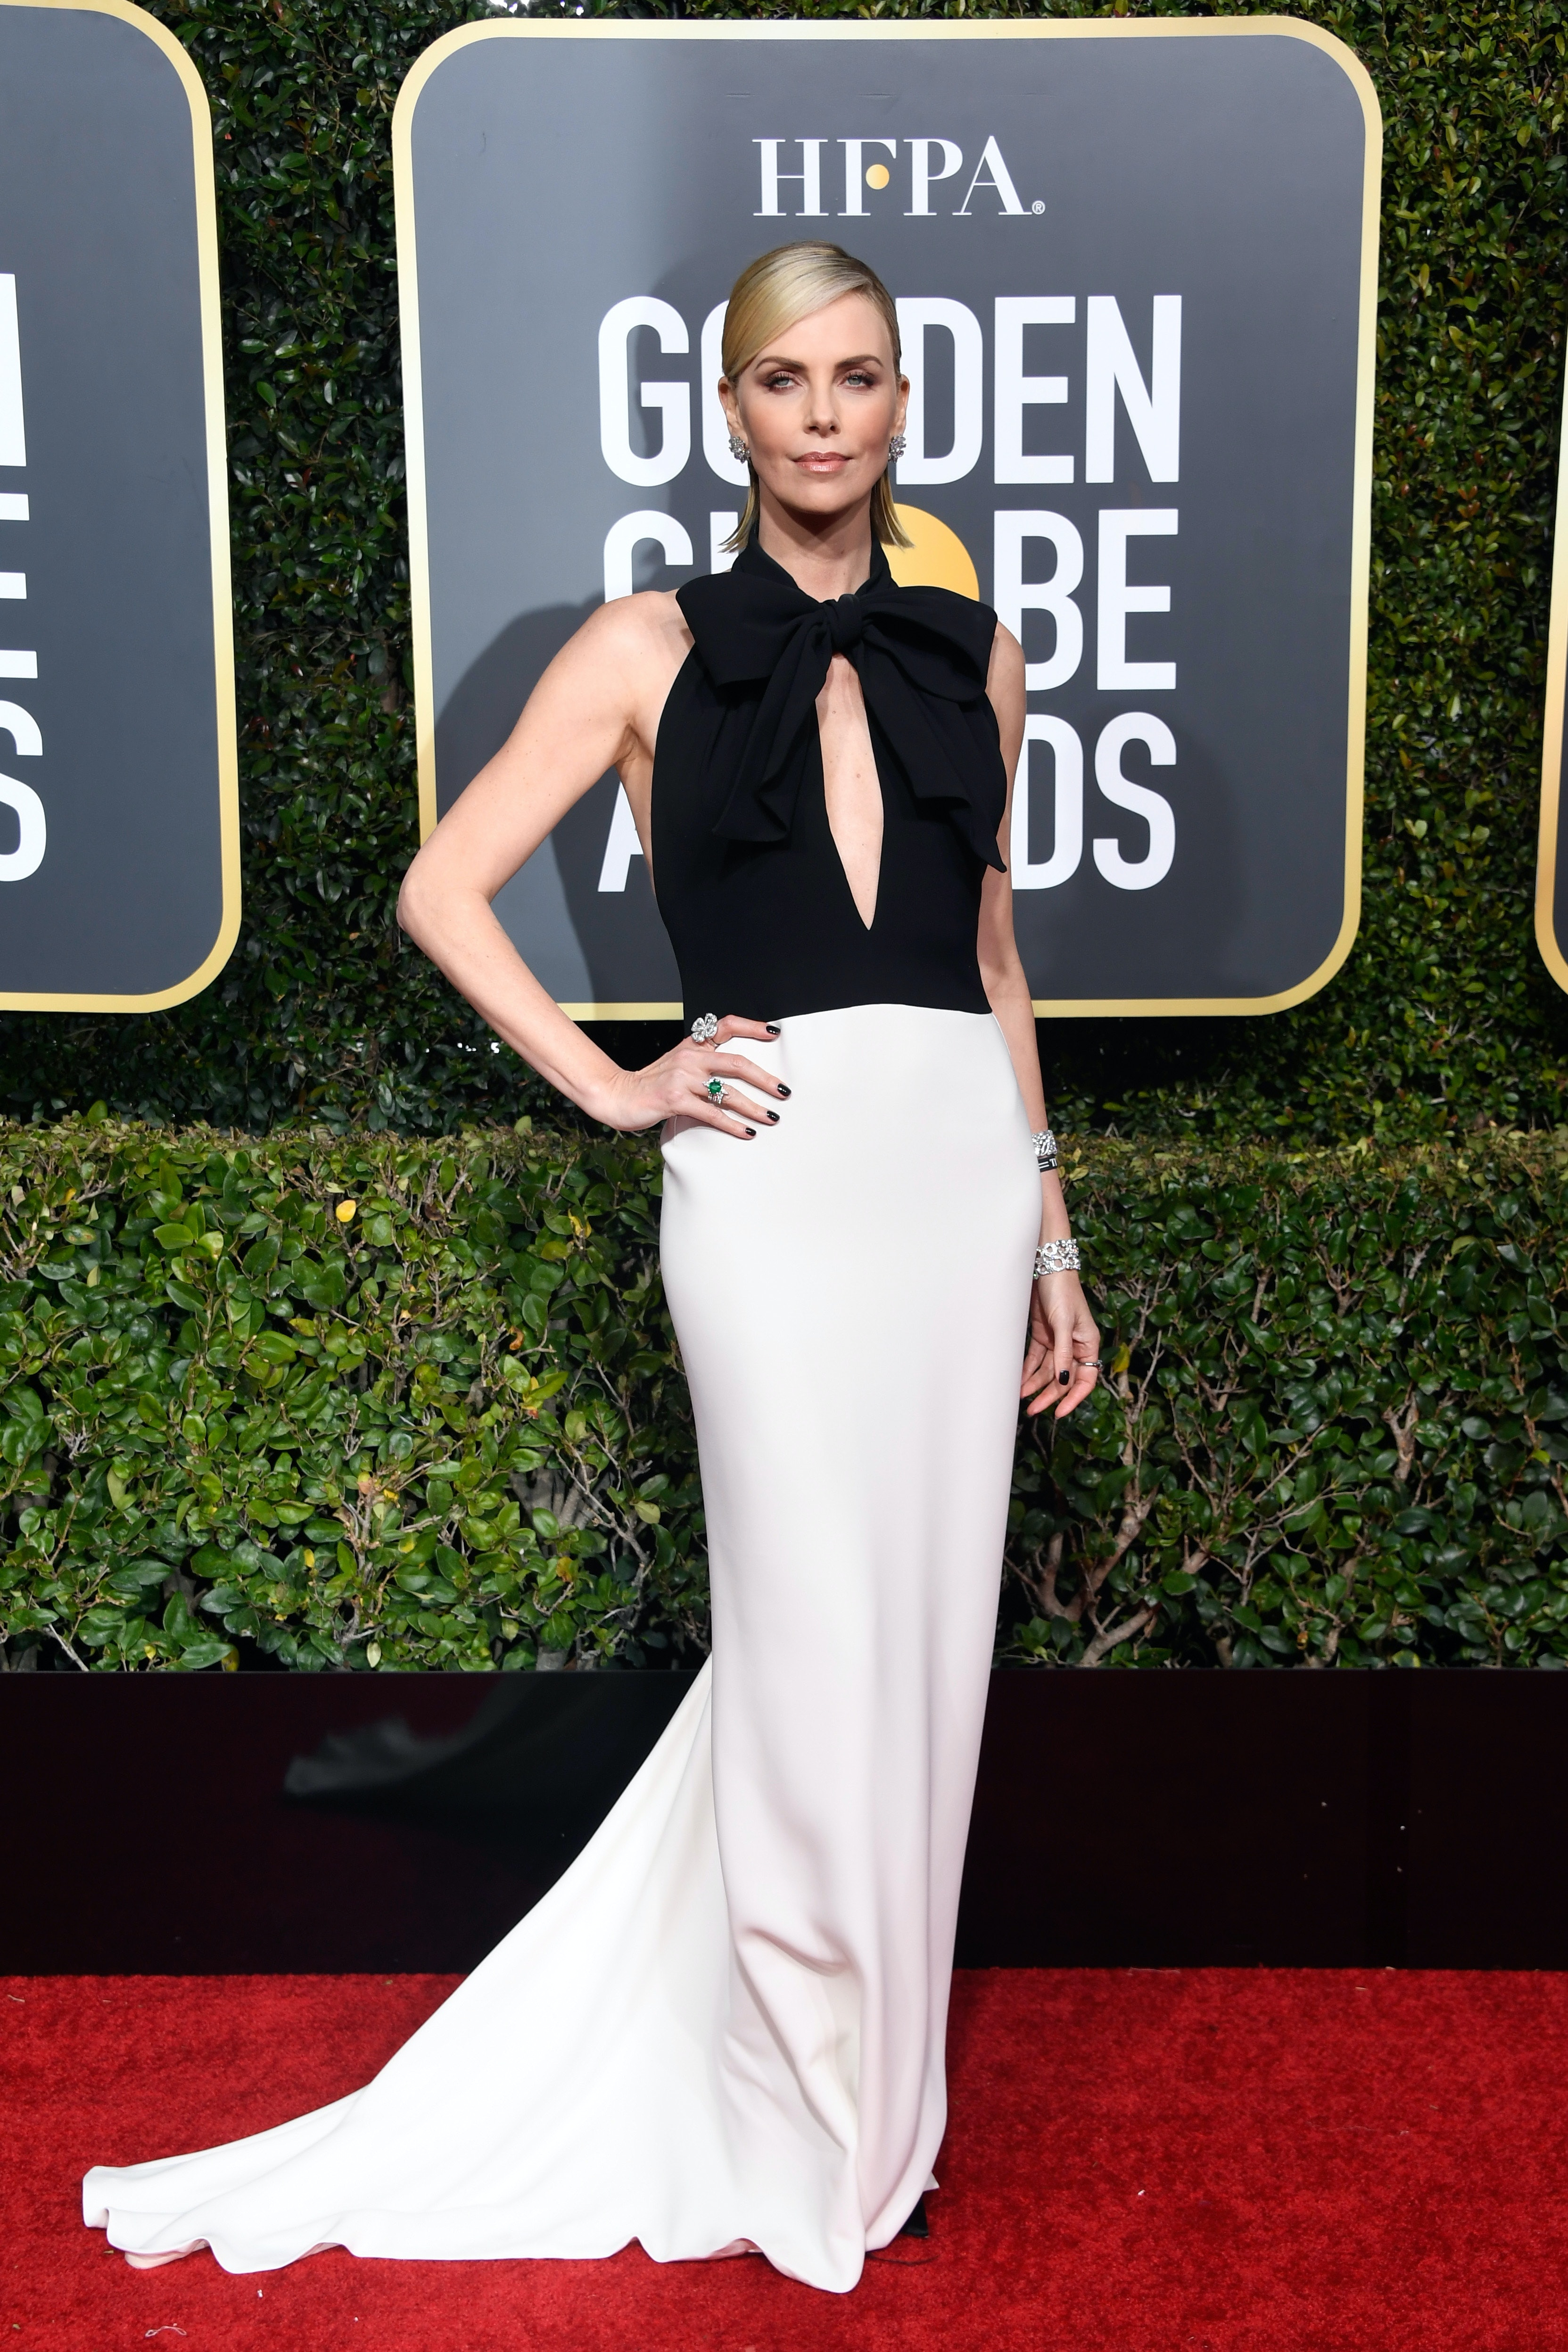 The 2019 Golden Globes Red Carpet Dresses You Need To See